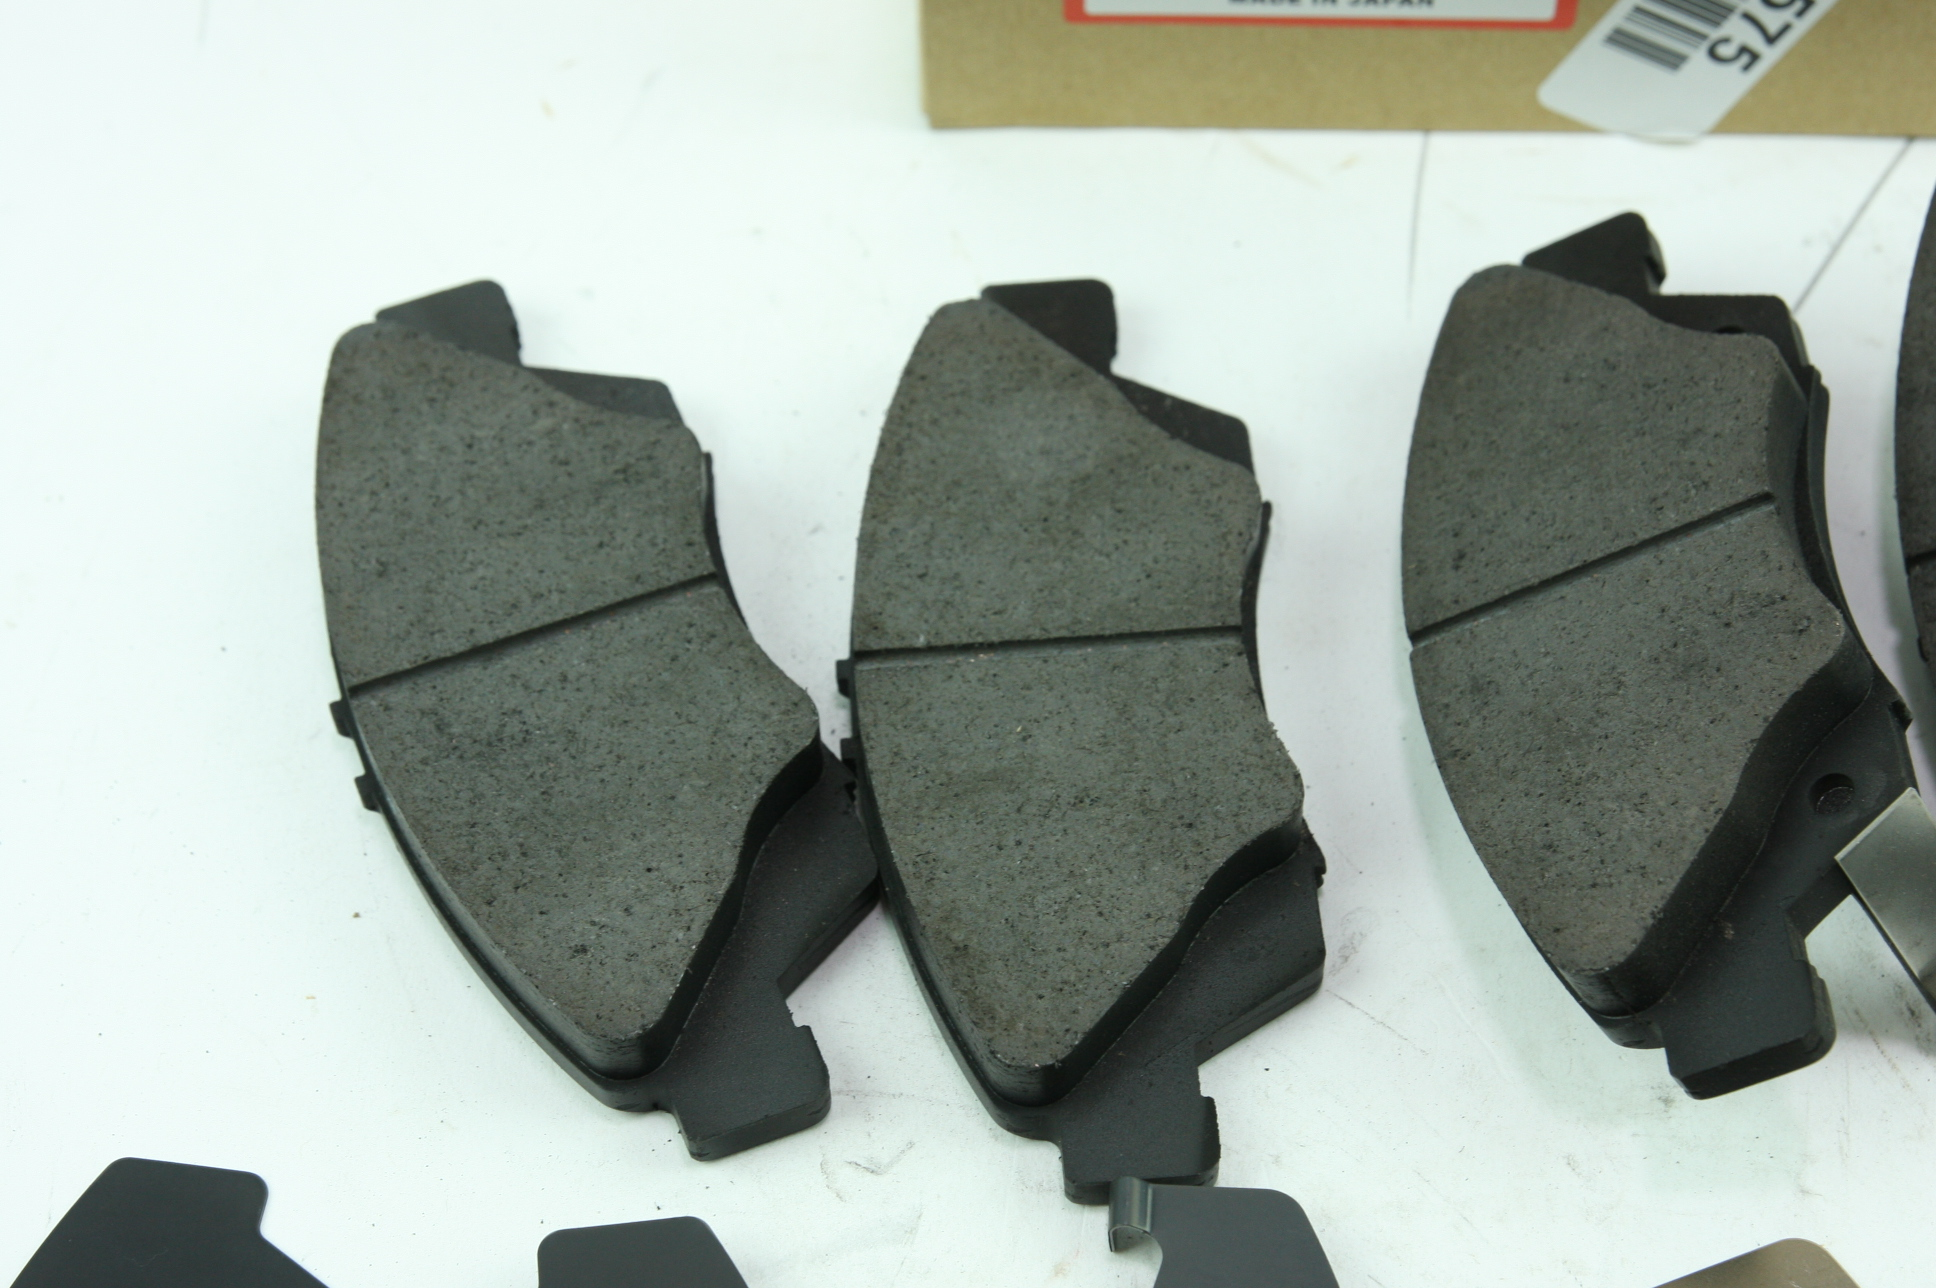 *New OEM 45022-S7A-010 Genuine Honda Front Brake Pads Set Civic 3Dr SI Acura RSX - image 3